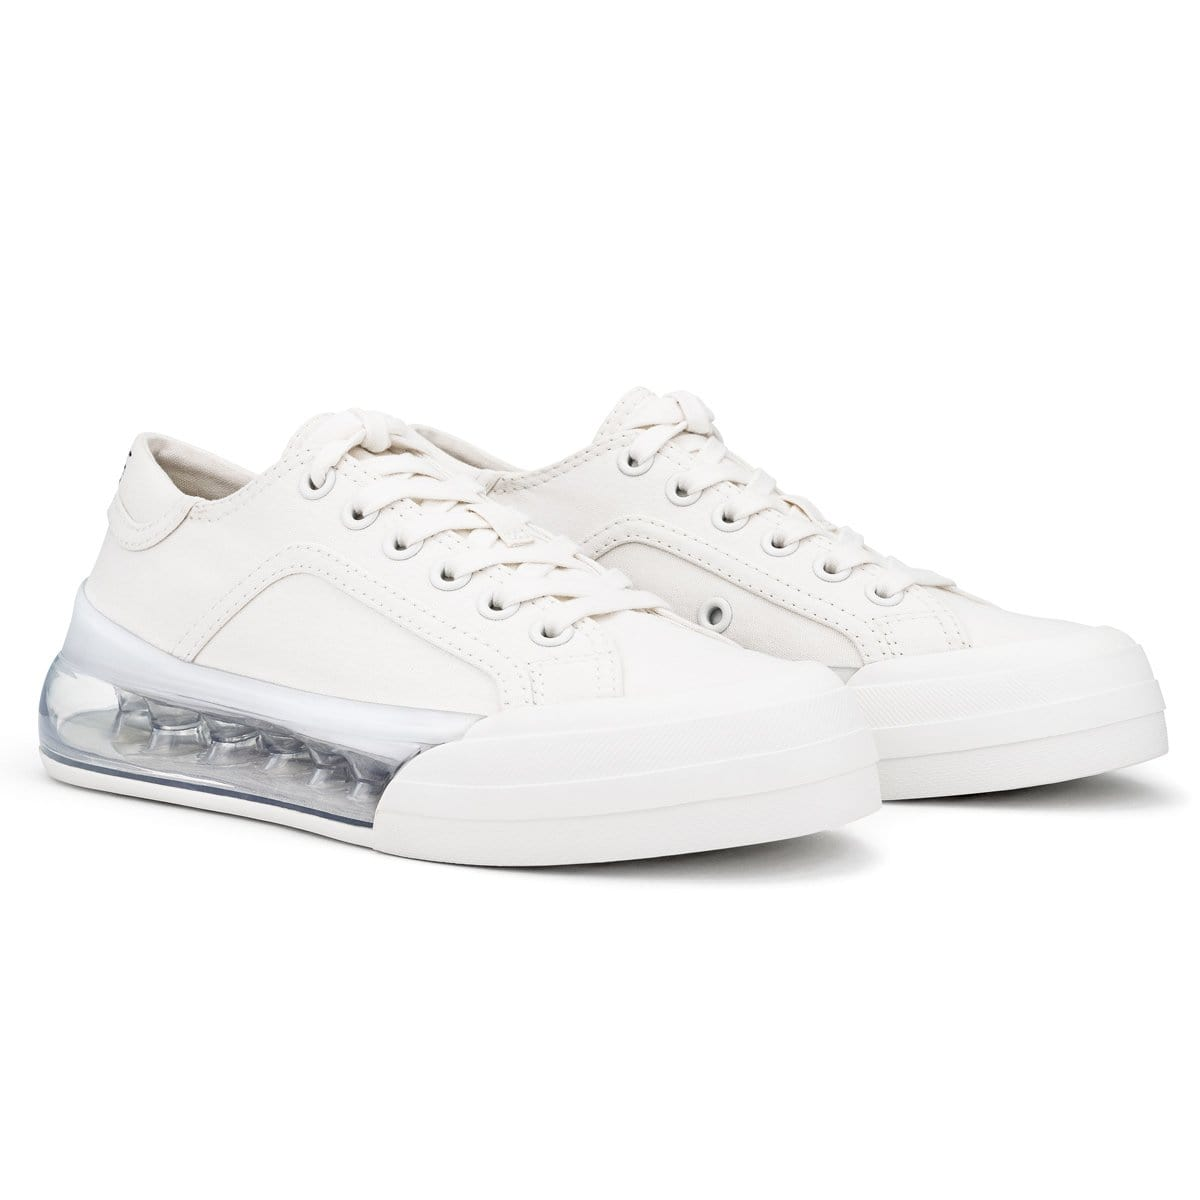 SHOES 53045 - Sneak'Air White LT